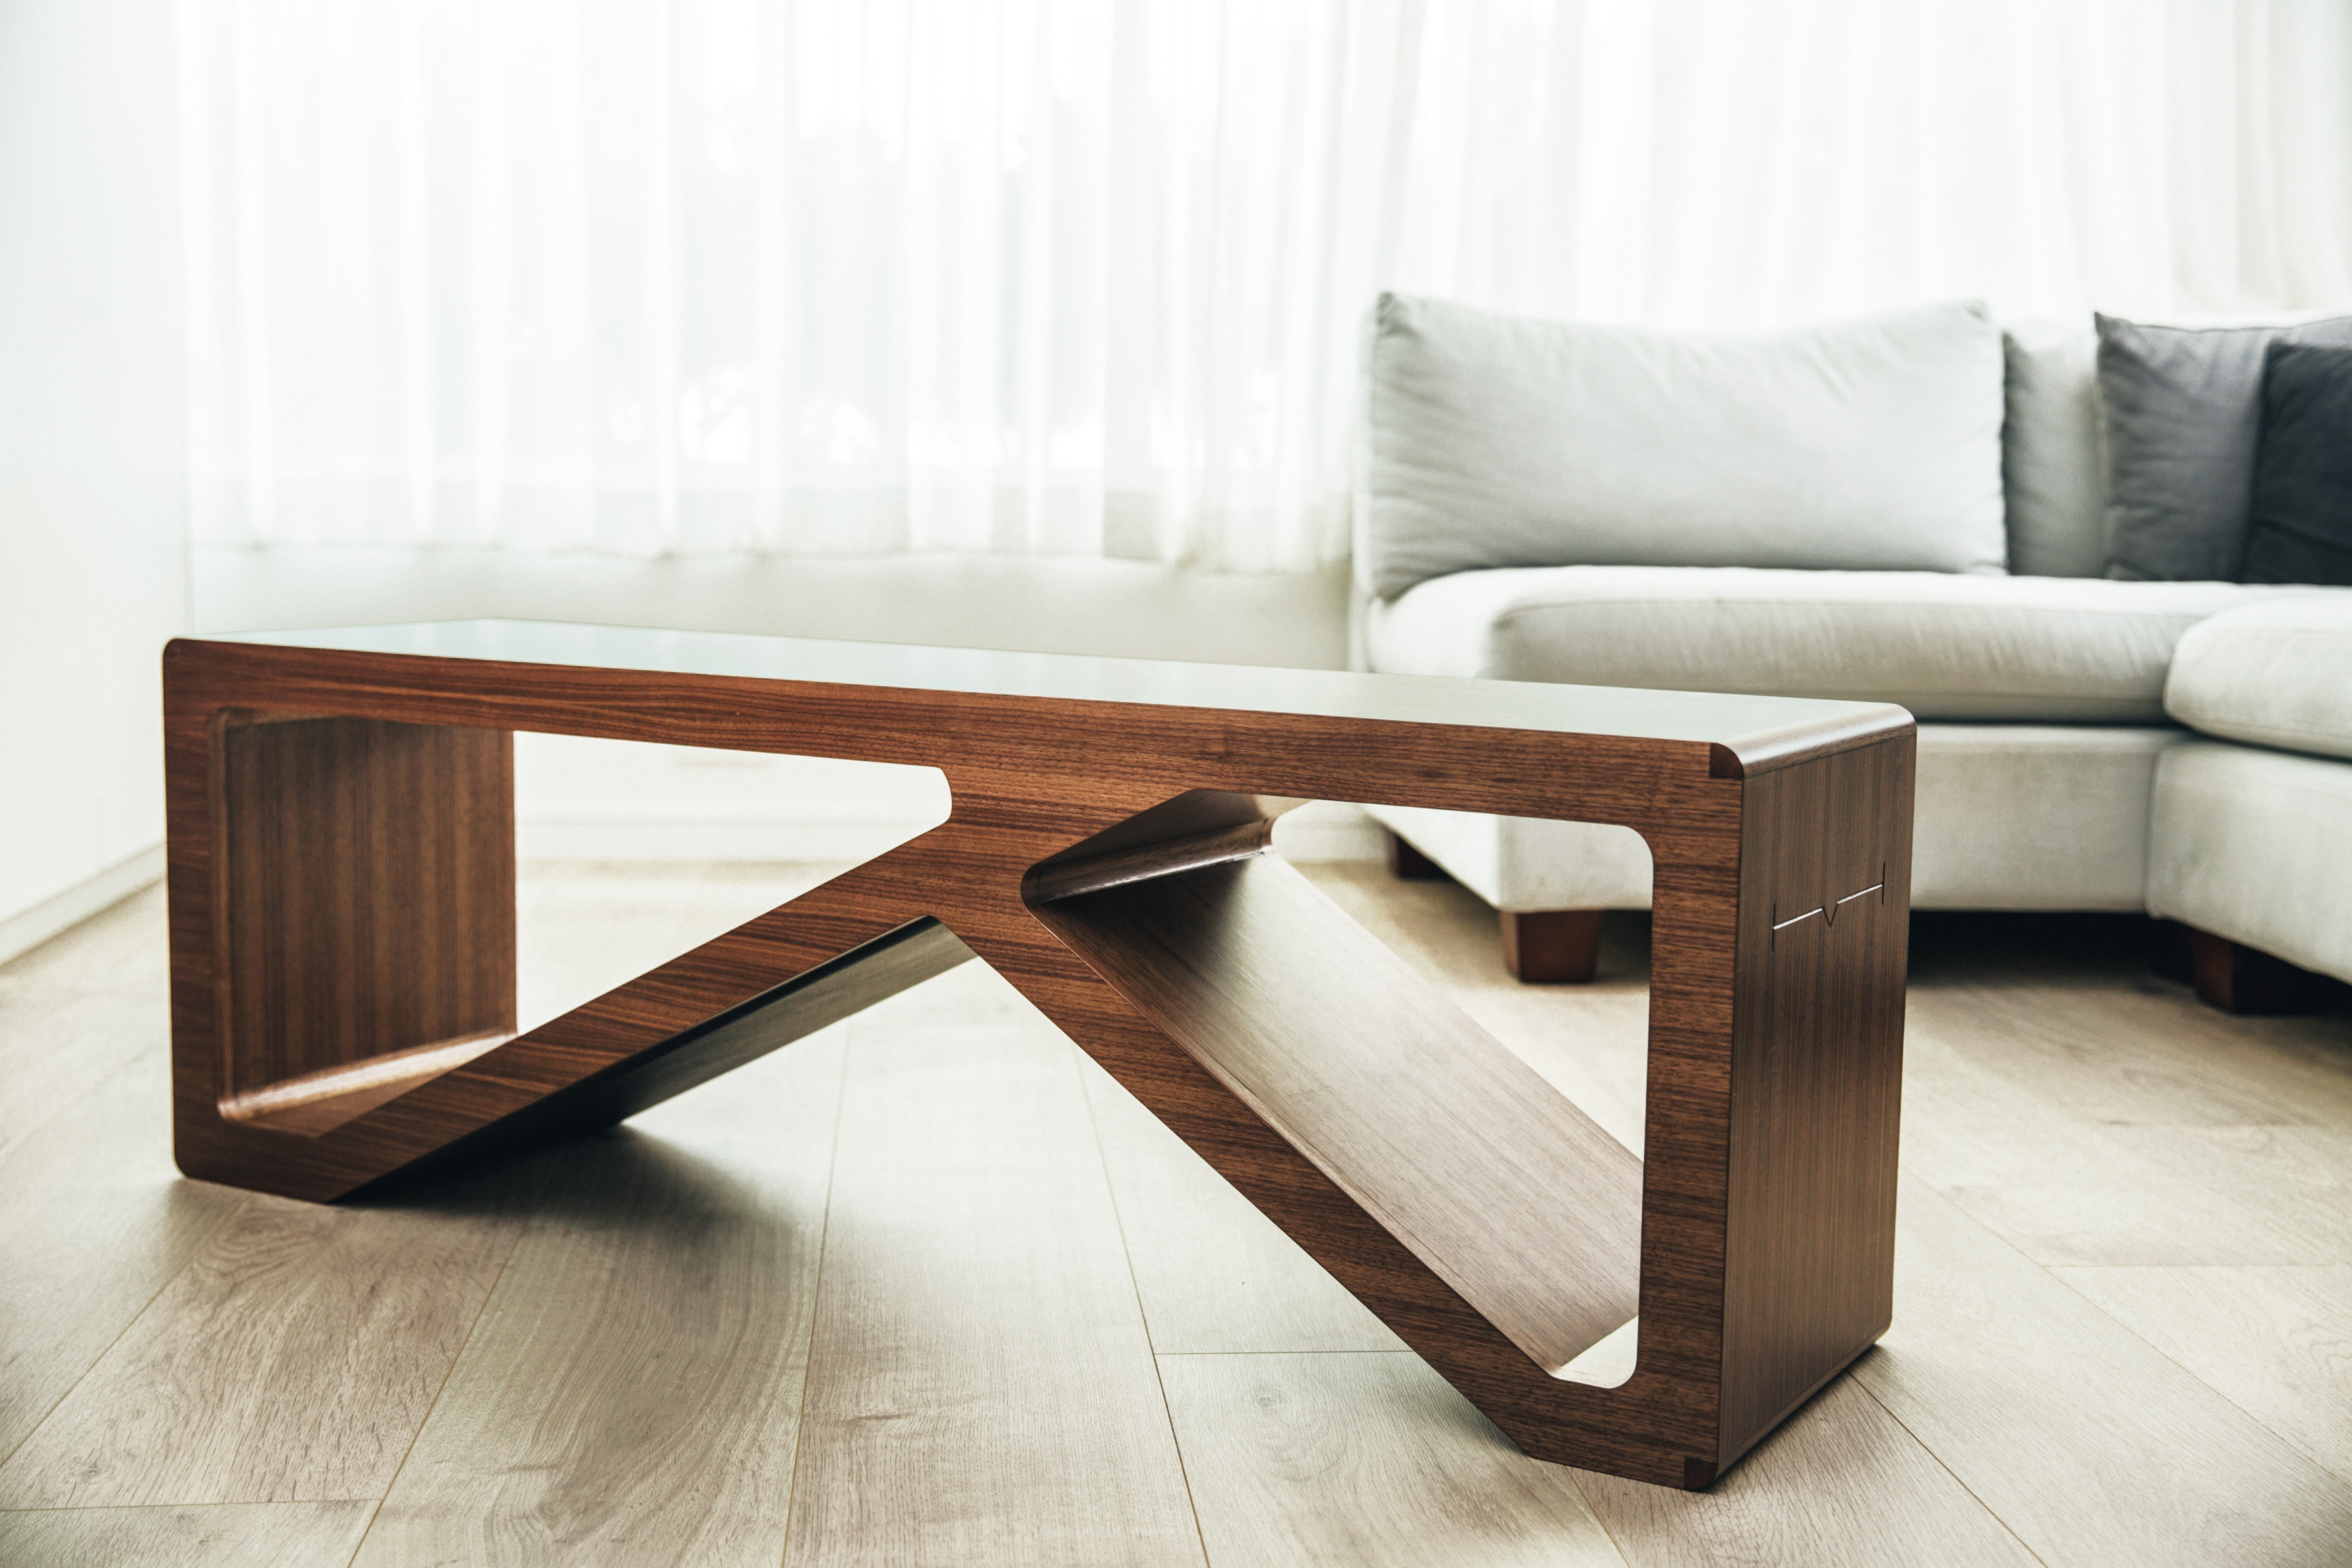 - A Coffee Table That Doubles As An Exercise Bench? Fitness